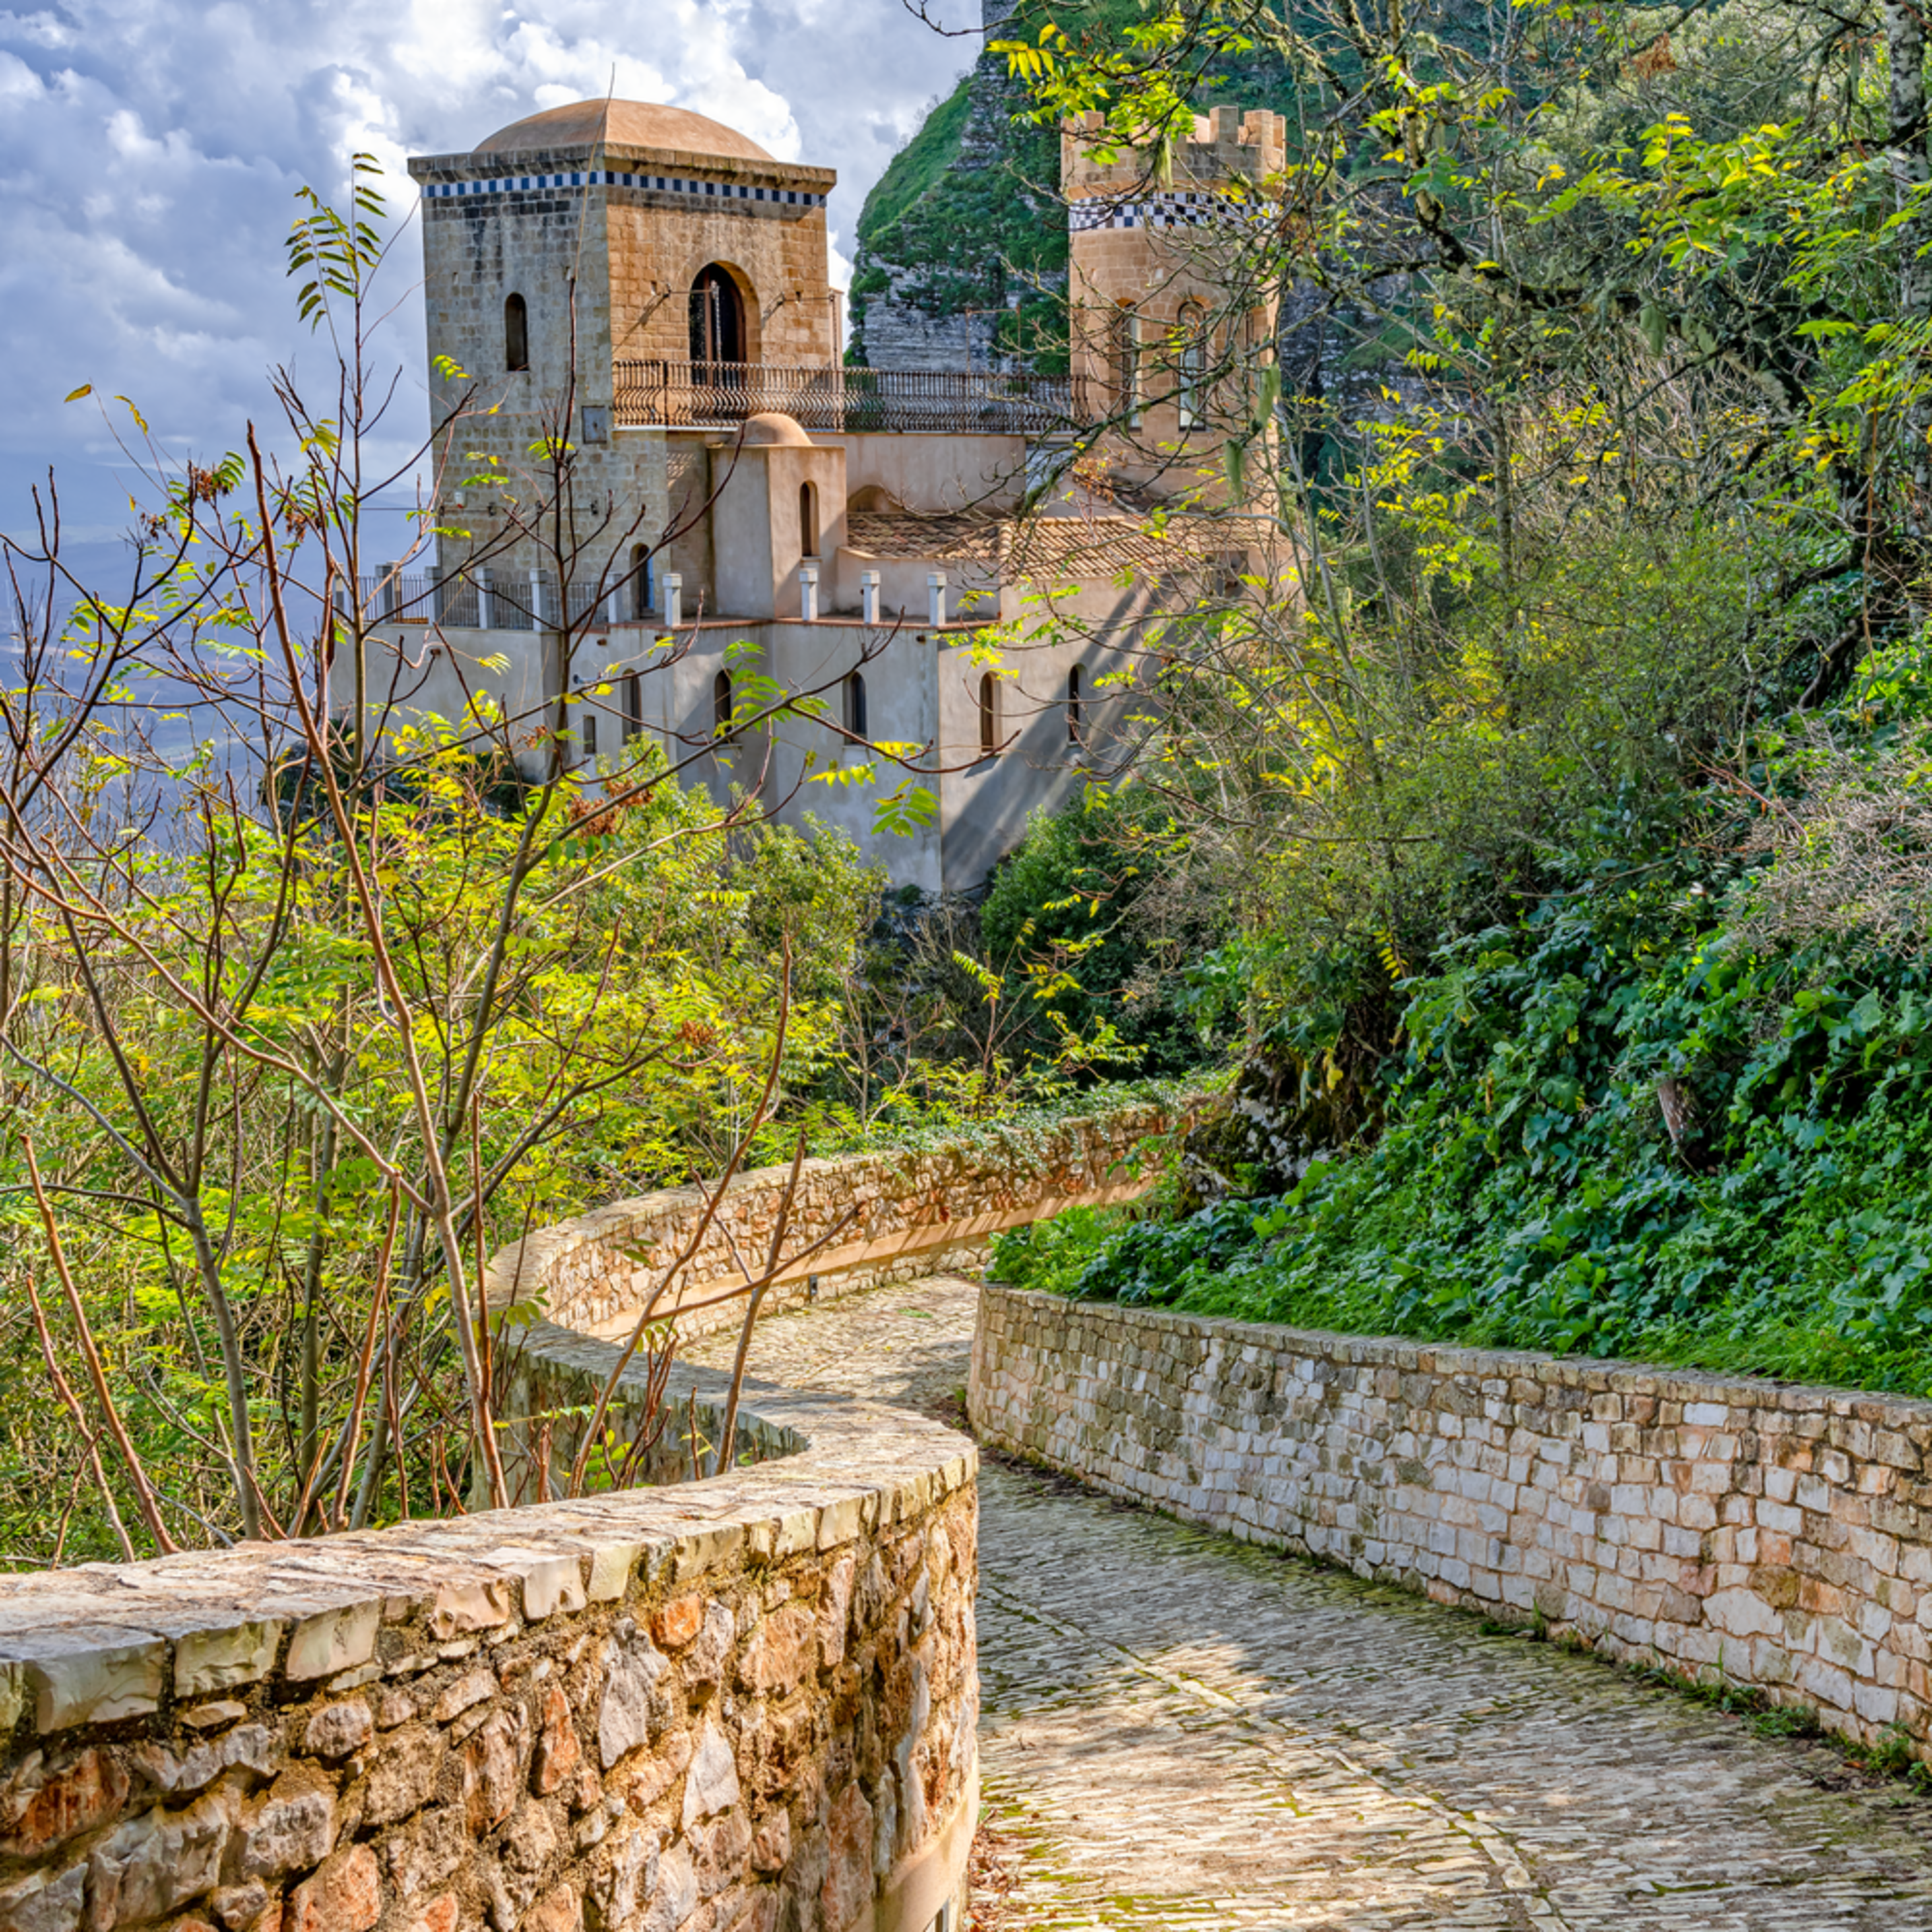 Erice and castle vertical sicily italy ubt0ox